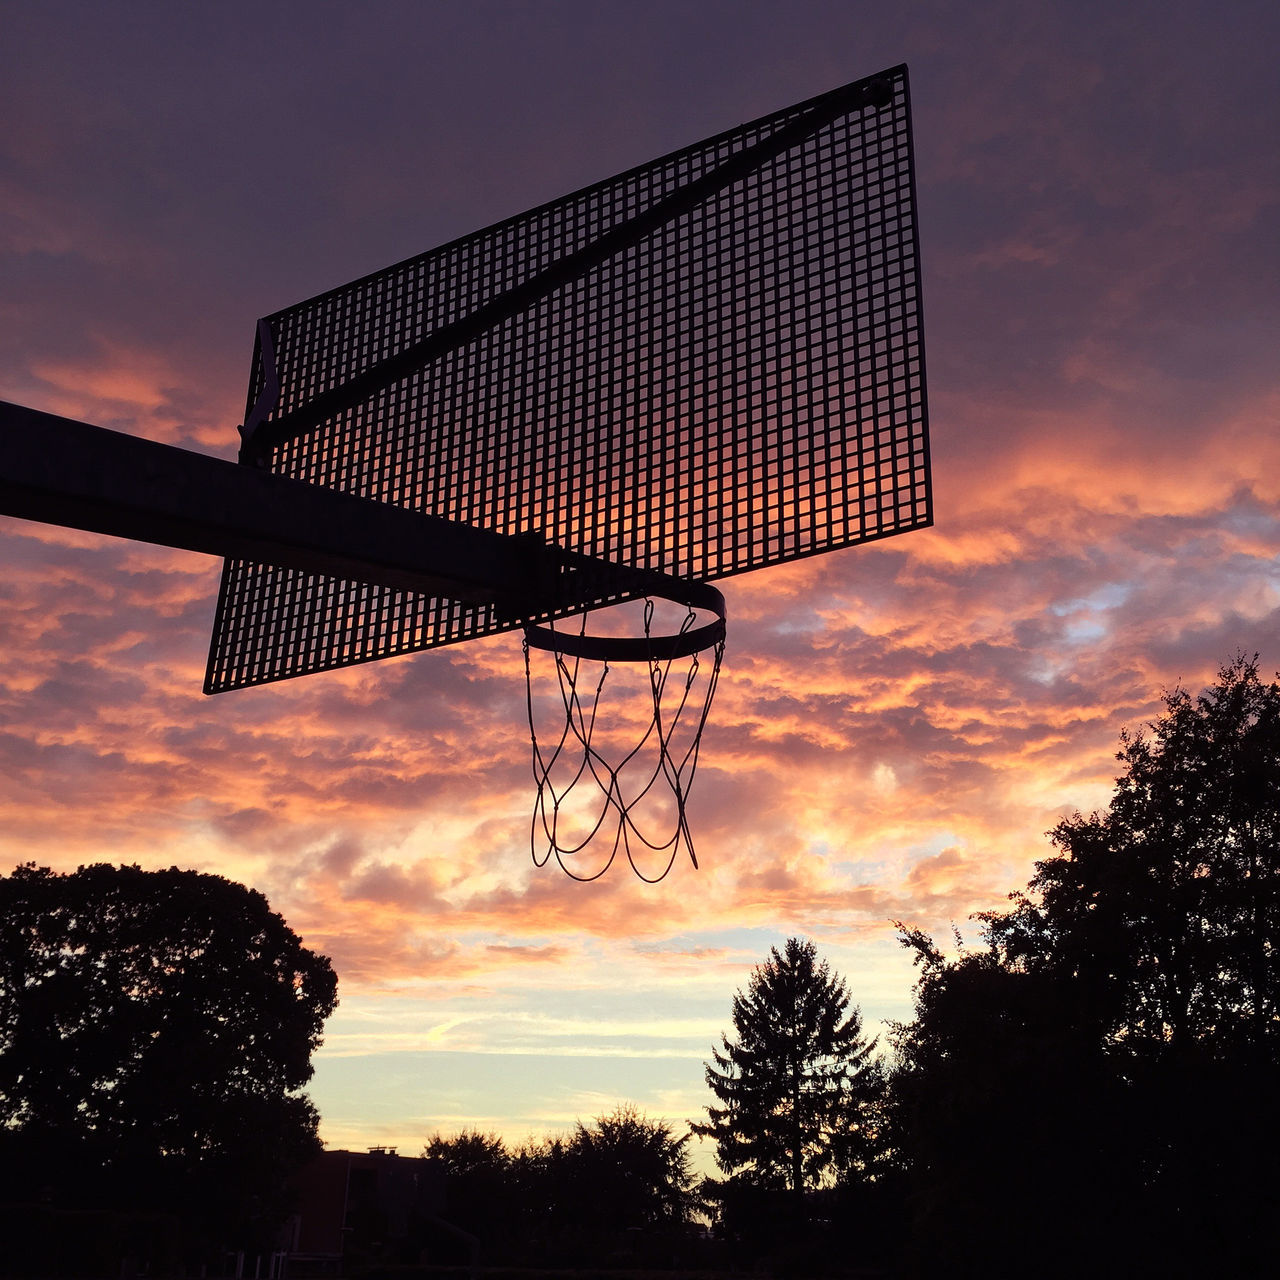 Atmosphere Atmospheric Mood Basket Basketball Basketball - Sport Basketball Court Basketball Game Basketball Hoop Basketball Hoop Basketball Is Life Cloud Cloud - Sky Cloudscape Dramatic Sky Low Angle View Meteorology Moody Sky No People Outdoors Scenics Silhouette Sky Sunset Tranquil Scene Tranquility